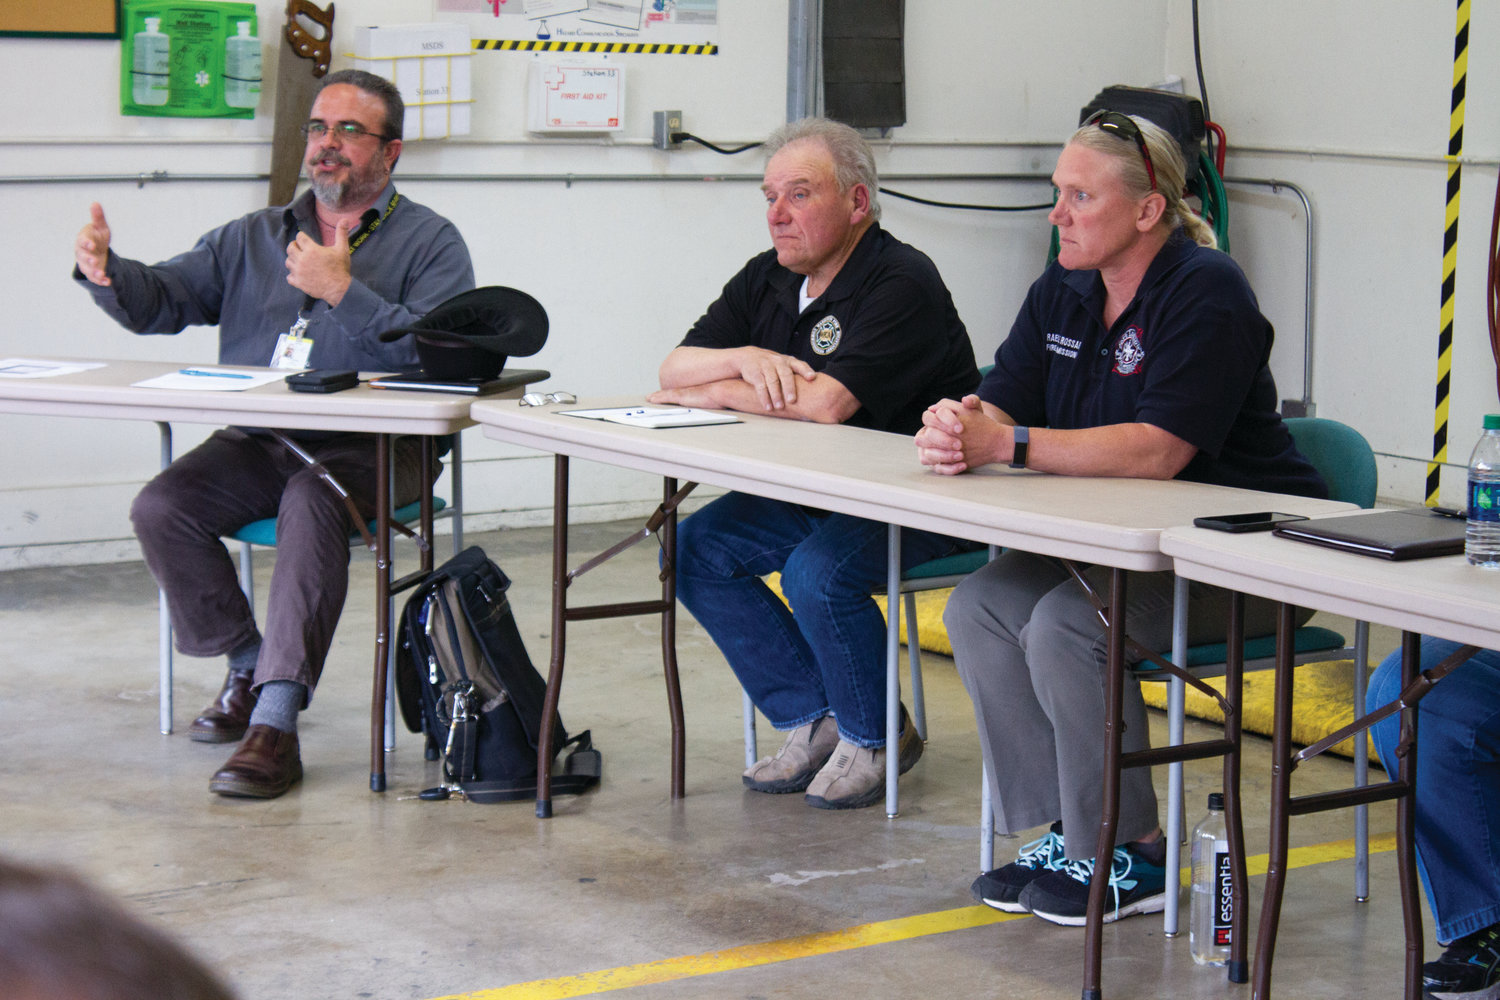 JeffCom Director Karl Hatton, left, addresses the community June 5 at the Port Ludlow Fire and Rescue Station 33 with fire personnel.